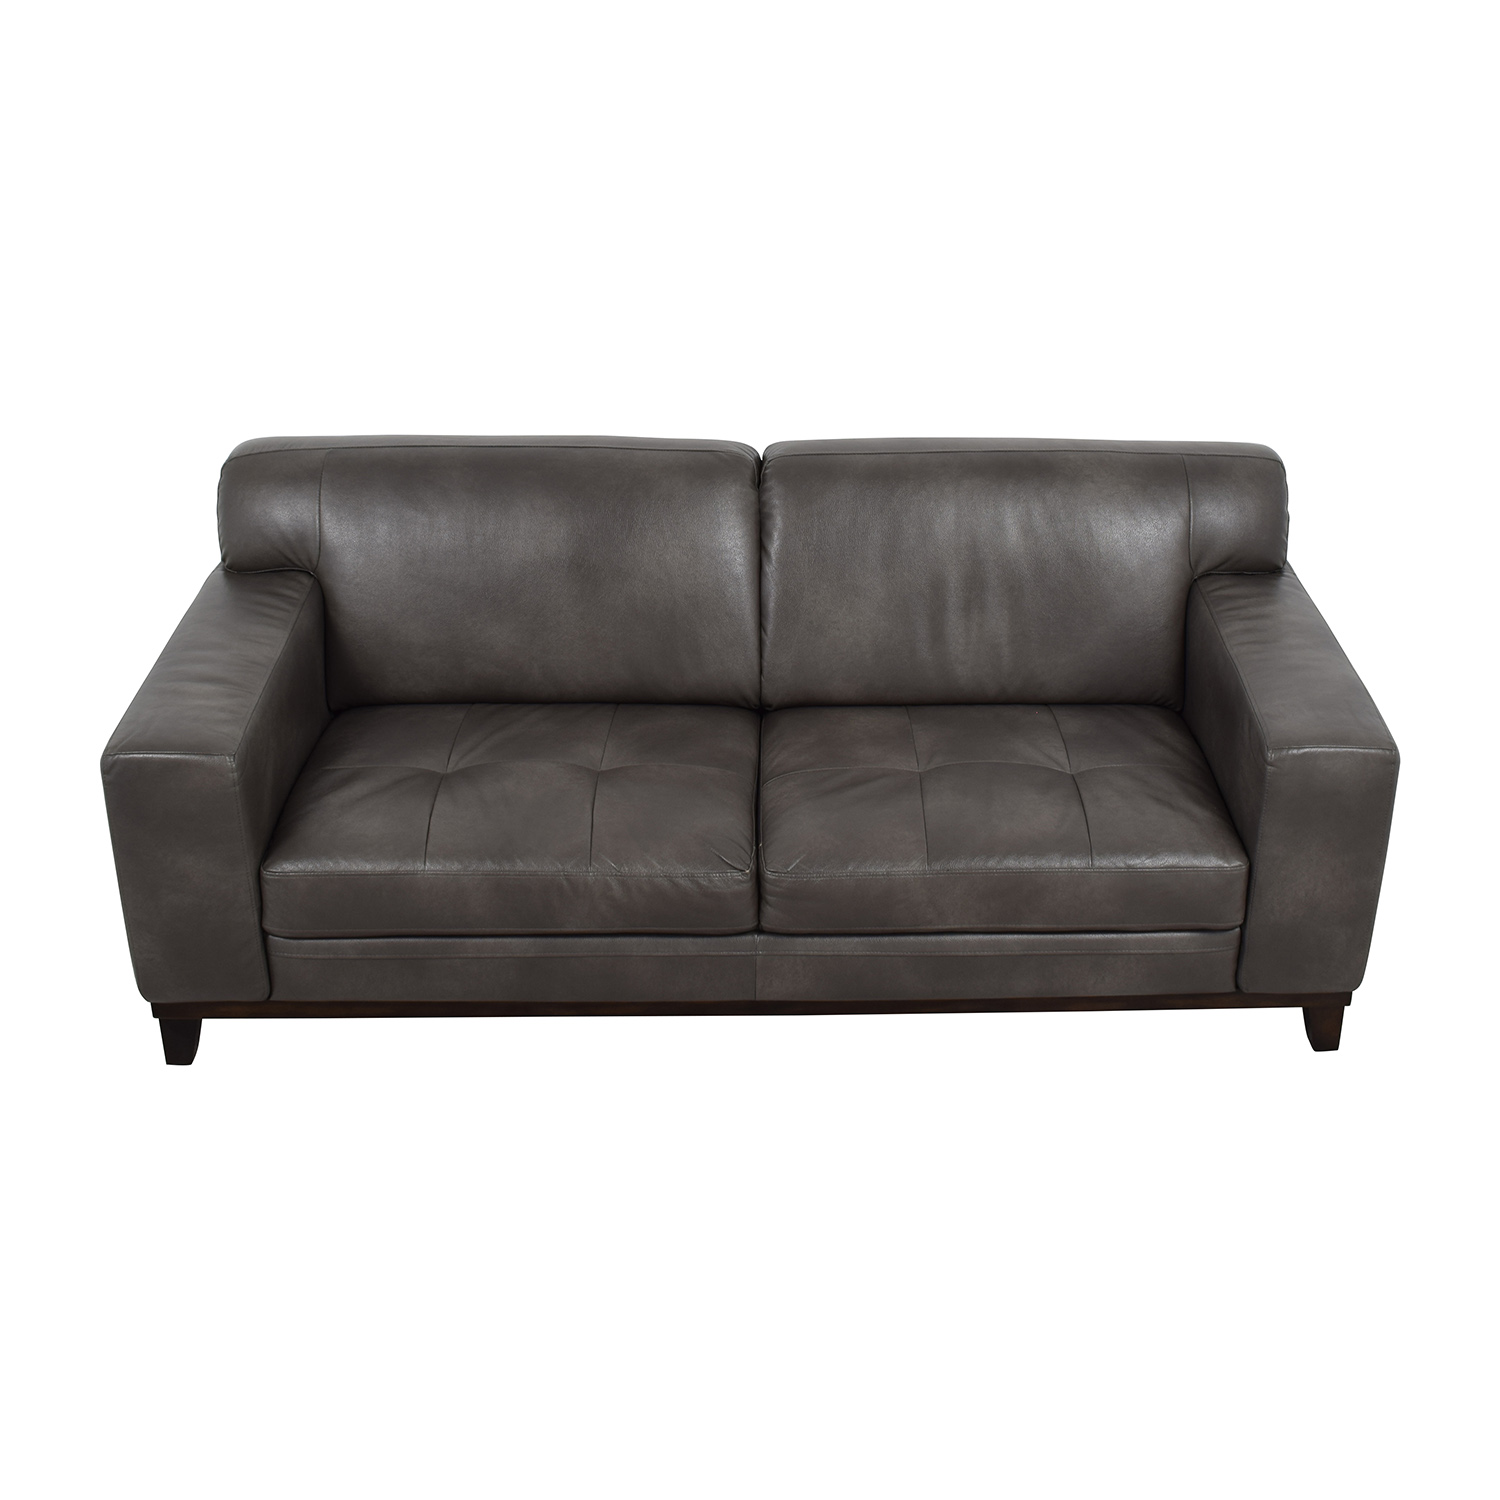 Raymour & Flanigan Grey Leather Couch / Sofas